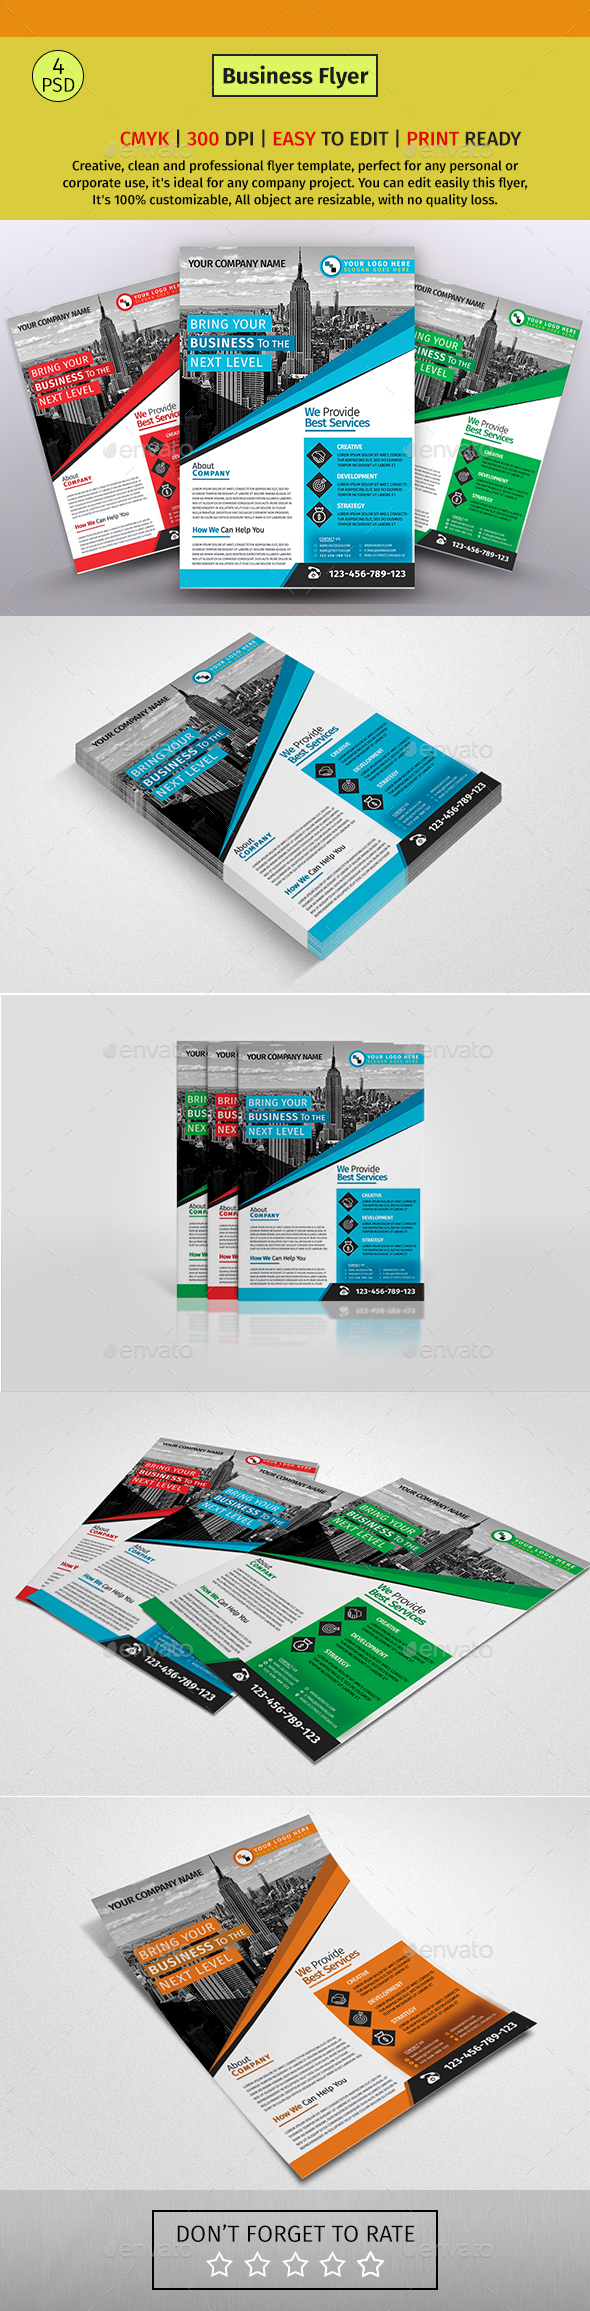 A4 Corporate Business Flyer #136 - Corporate Flyers